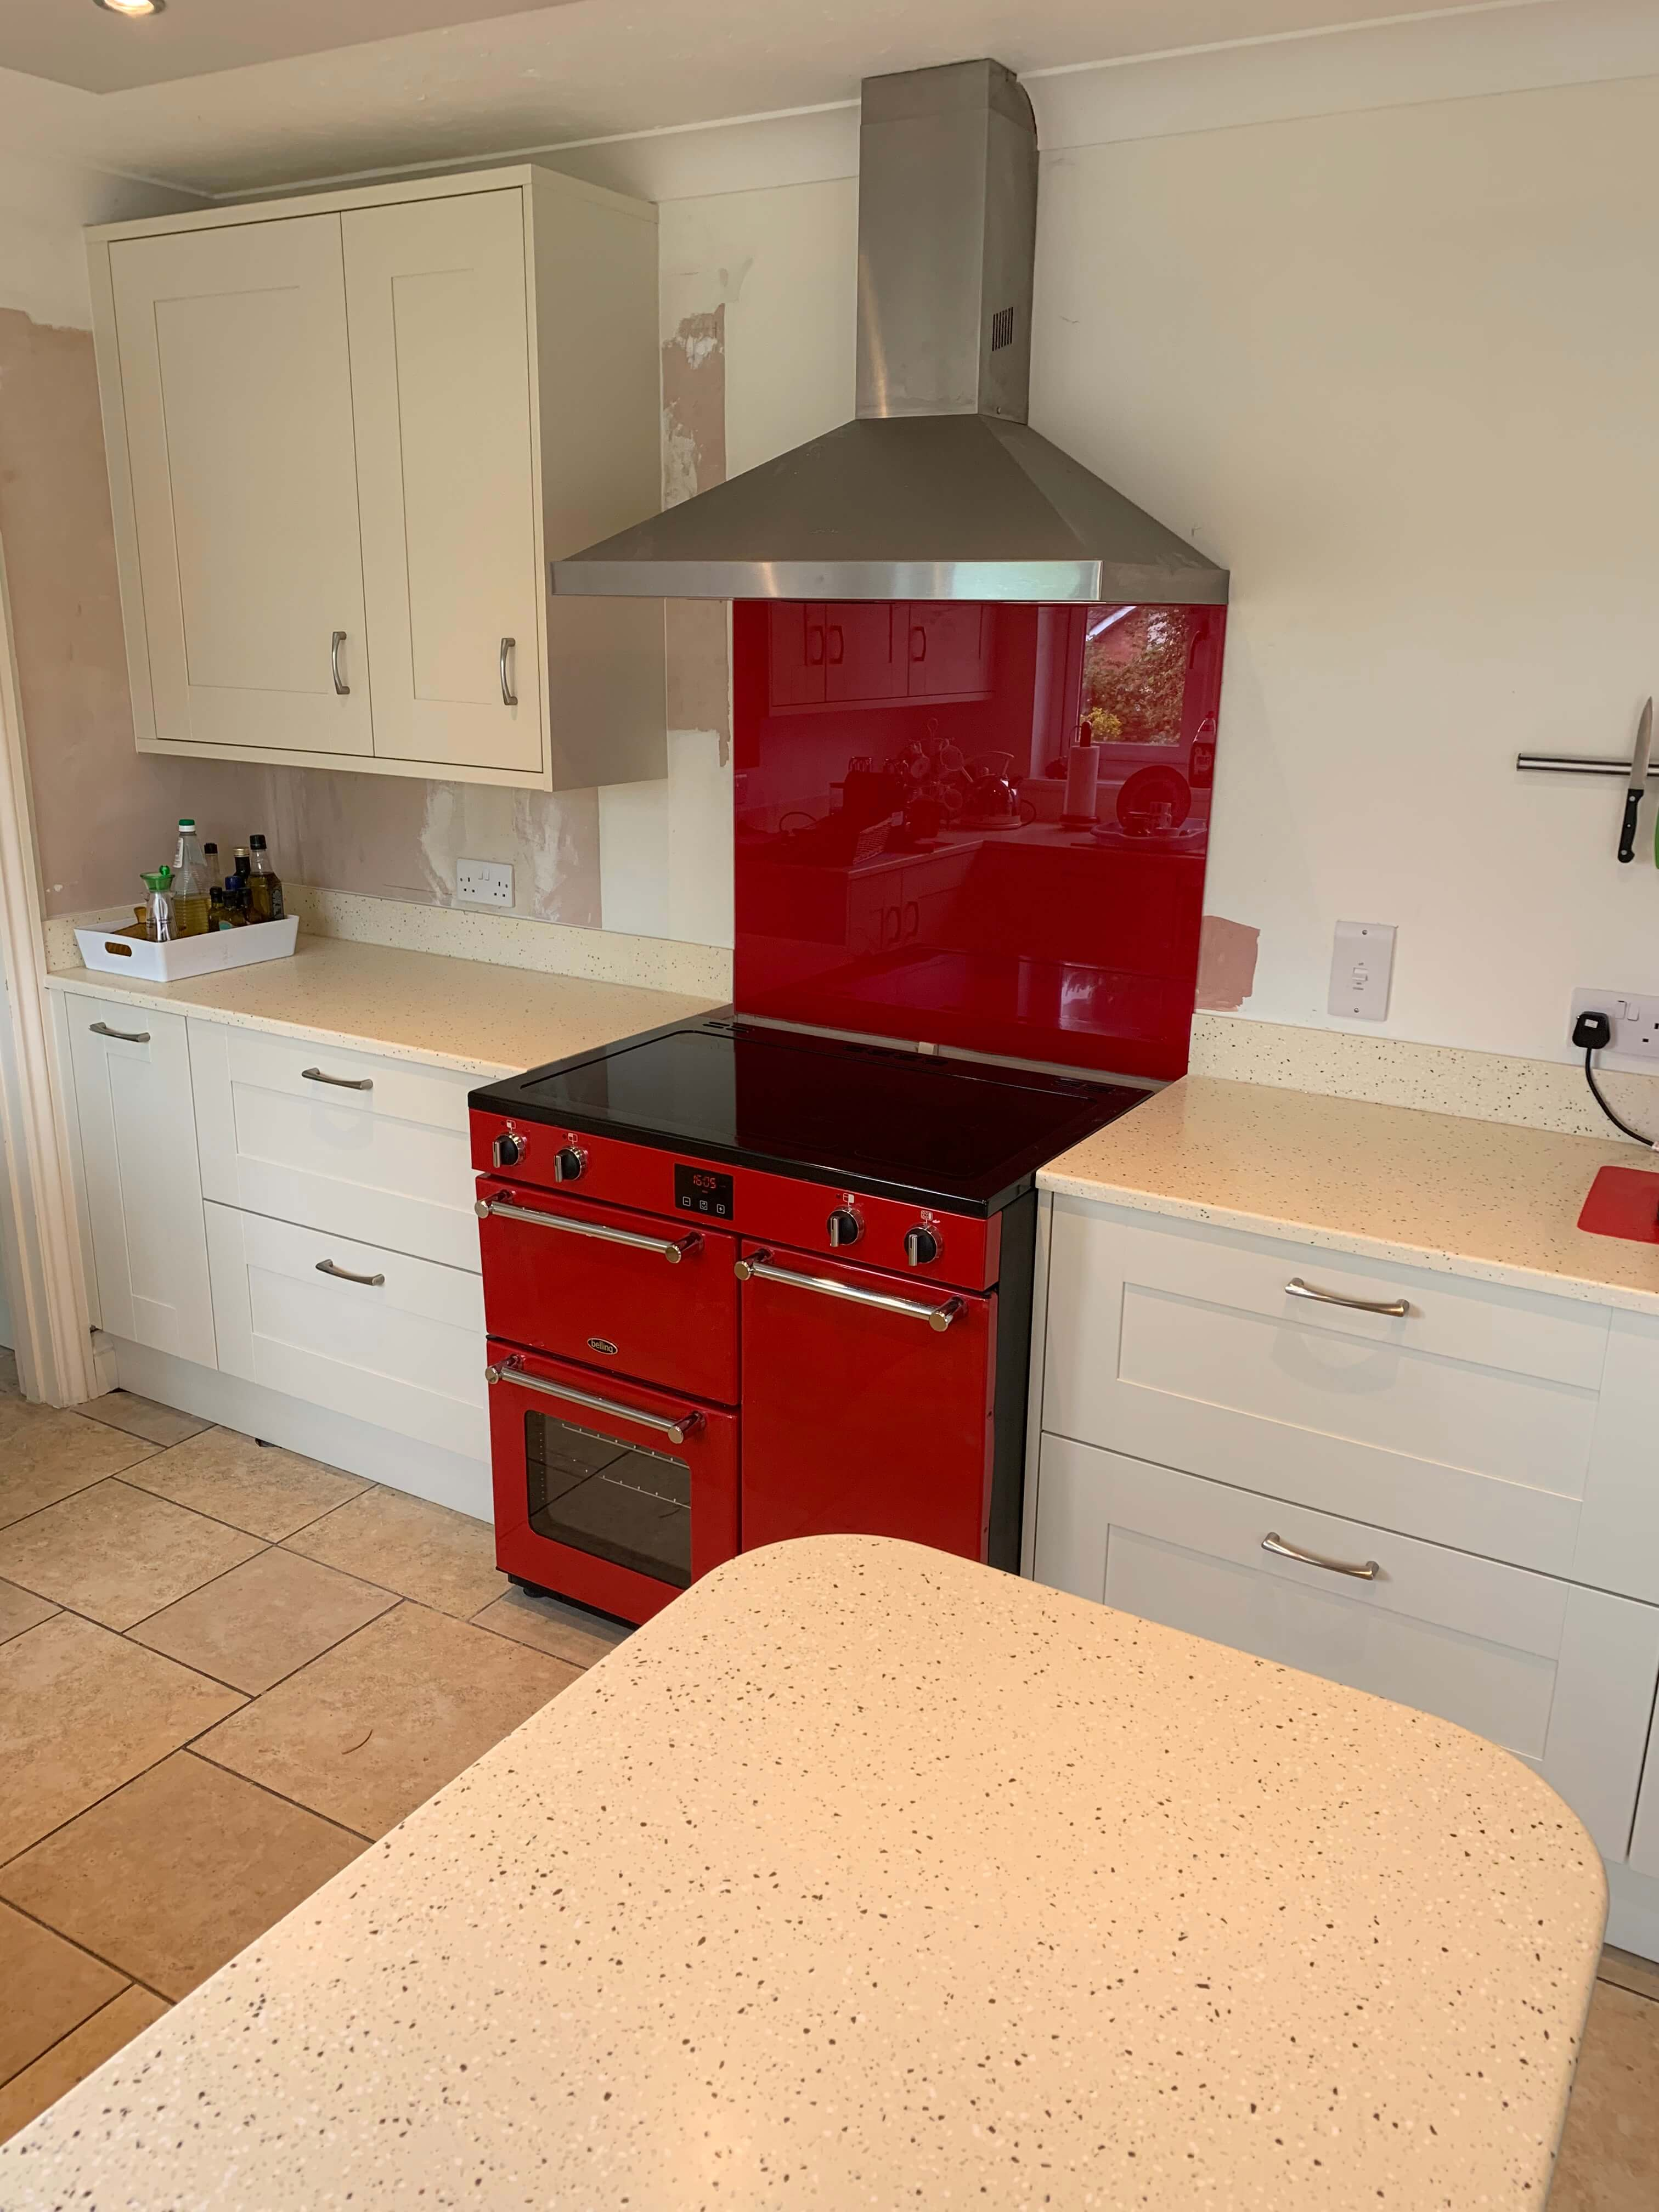 Mr & Mrs A of Swimbridge kitchen Oven Hob and Extractor